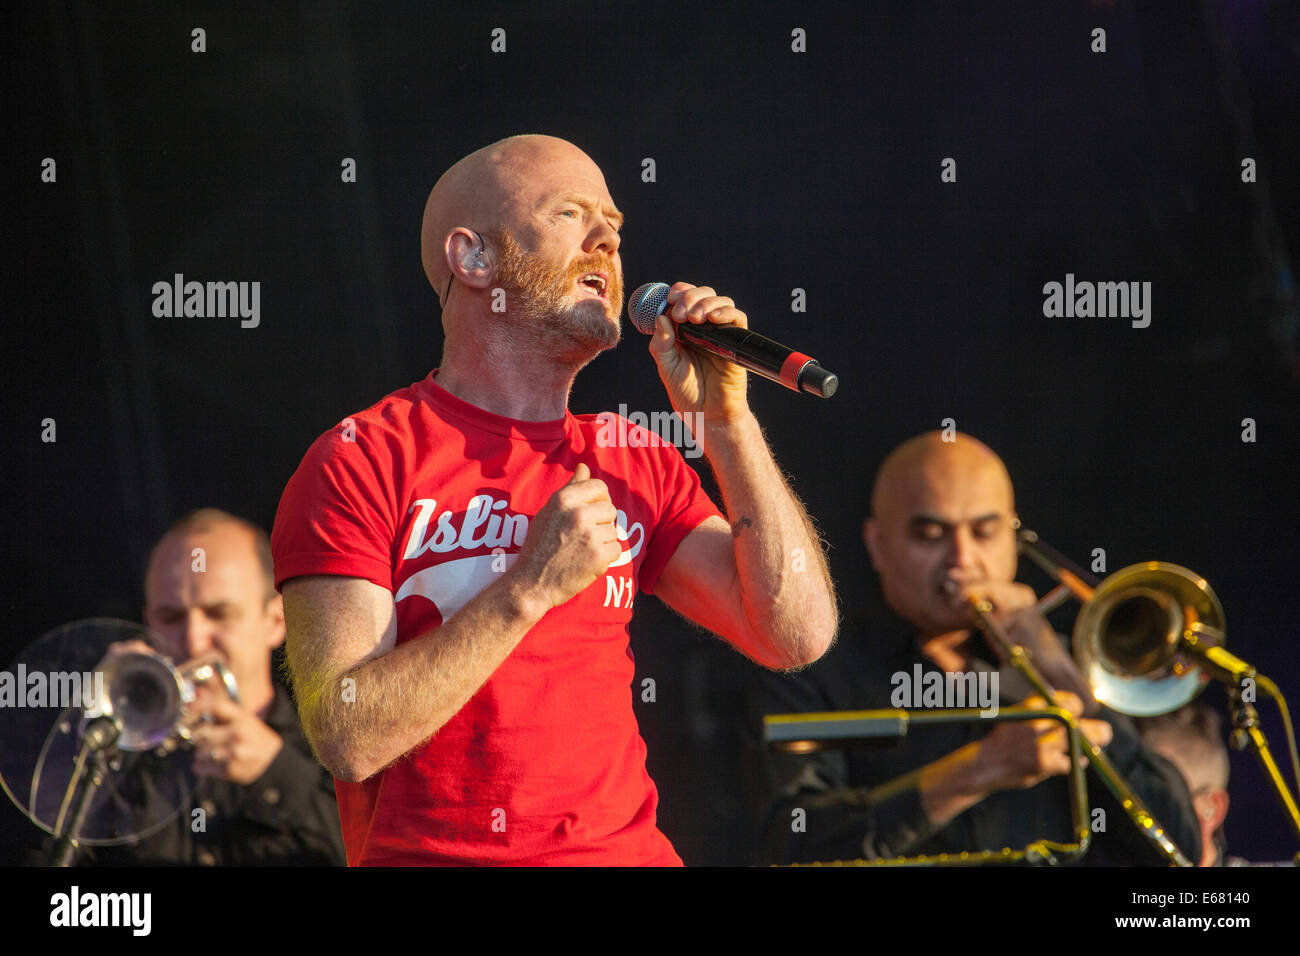 Remenham Henley-on-Thames Oxfordshire UK. 17 August 2014. Singer JIMMY SOMERVILLE performs on-stage at the 2014 Stock Photo